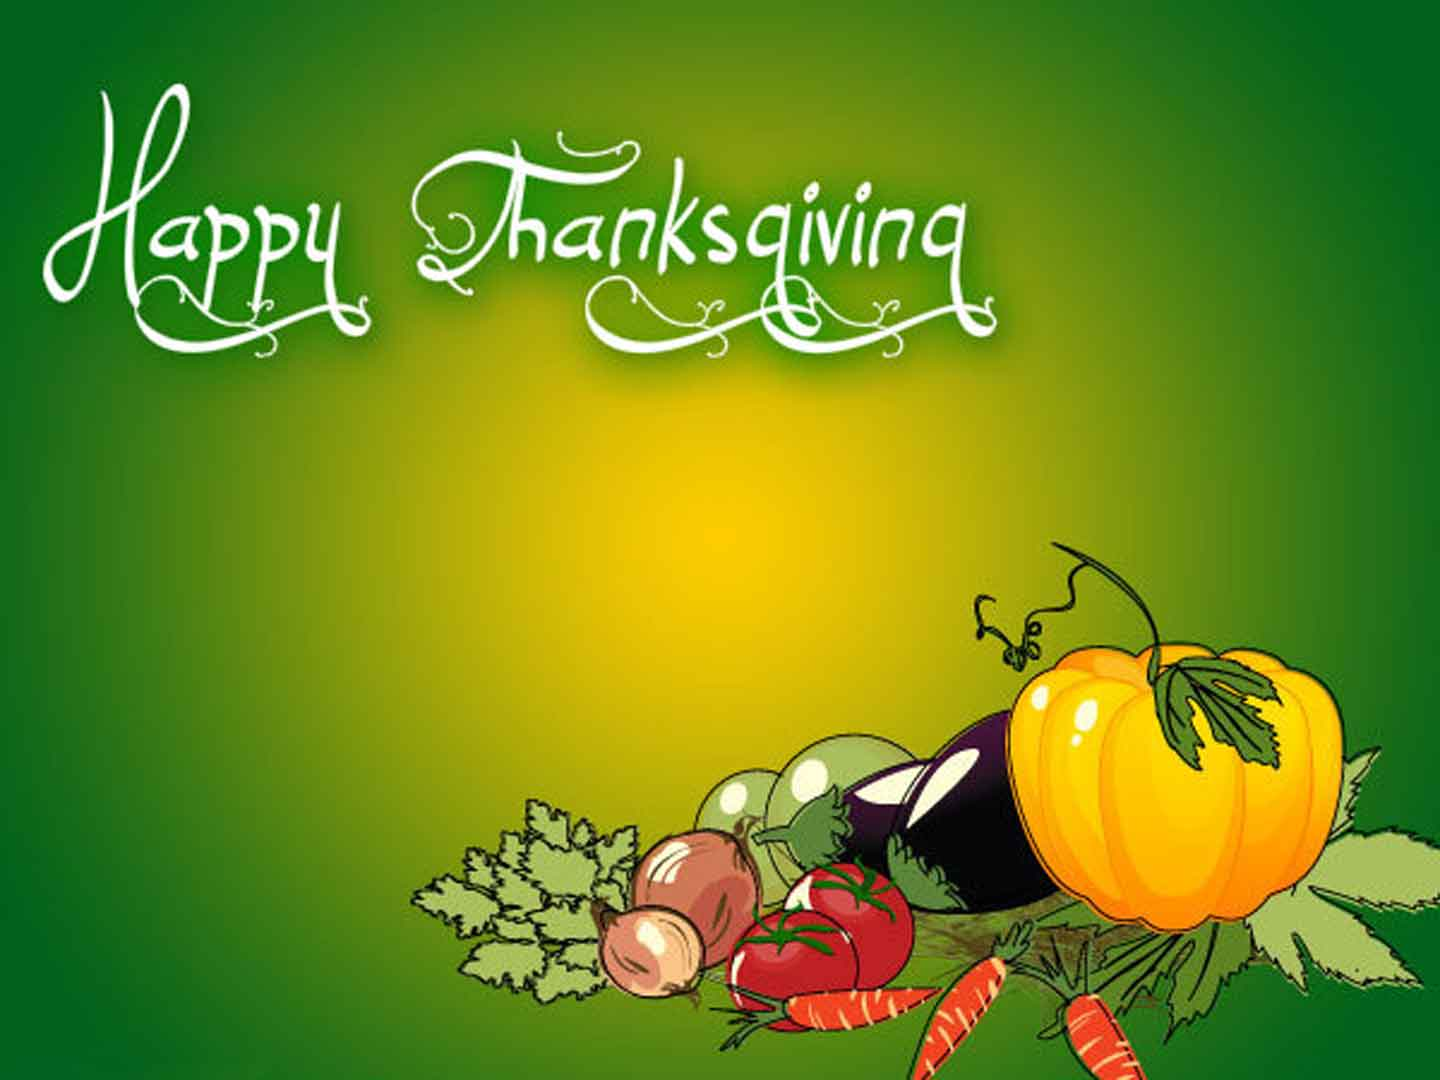 happy thanksgivinghd wallpapers - photo #8